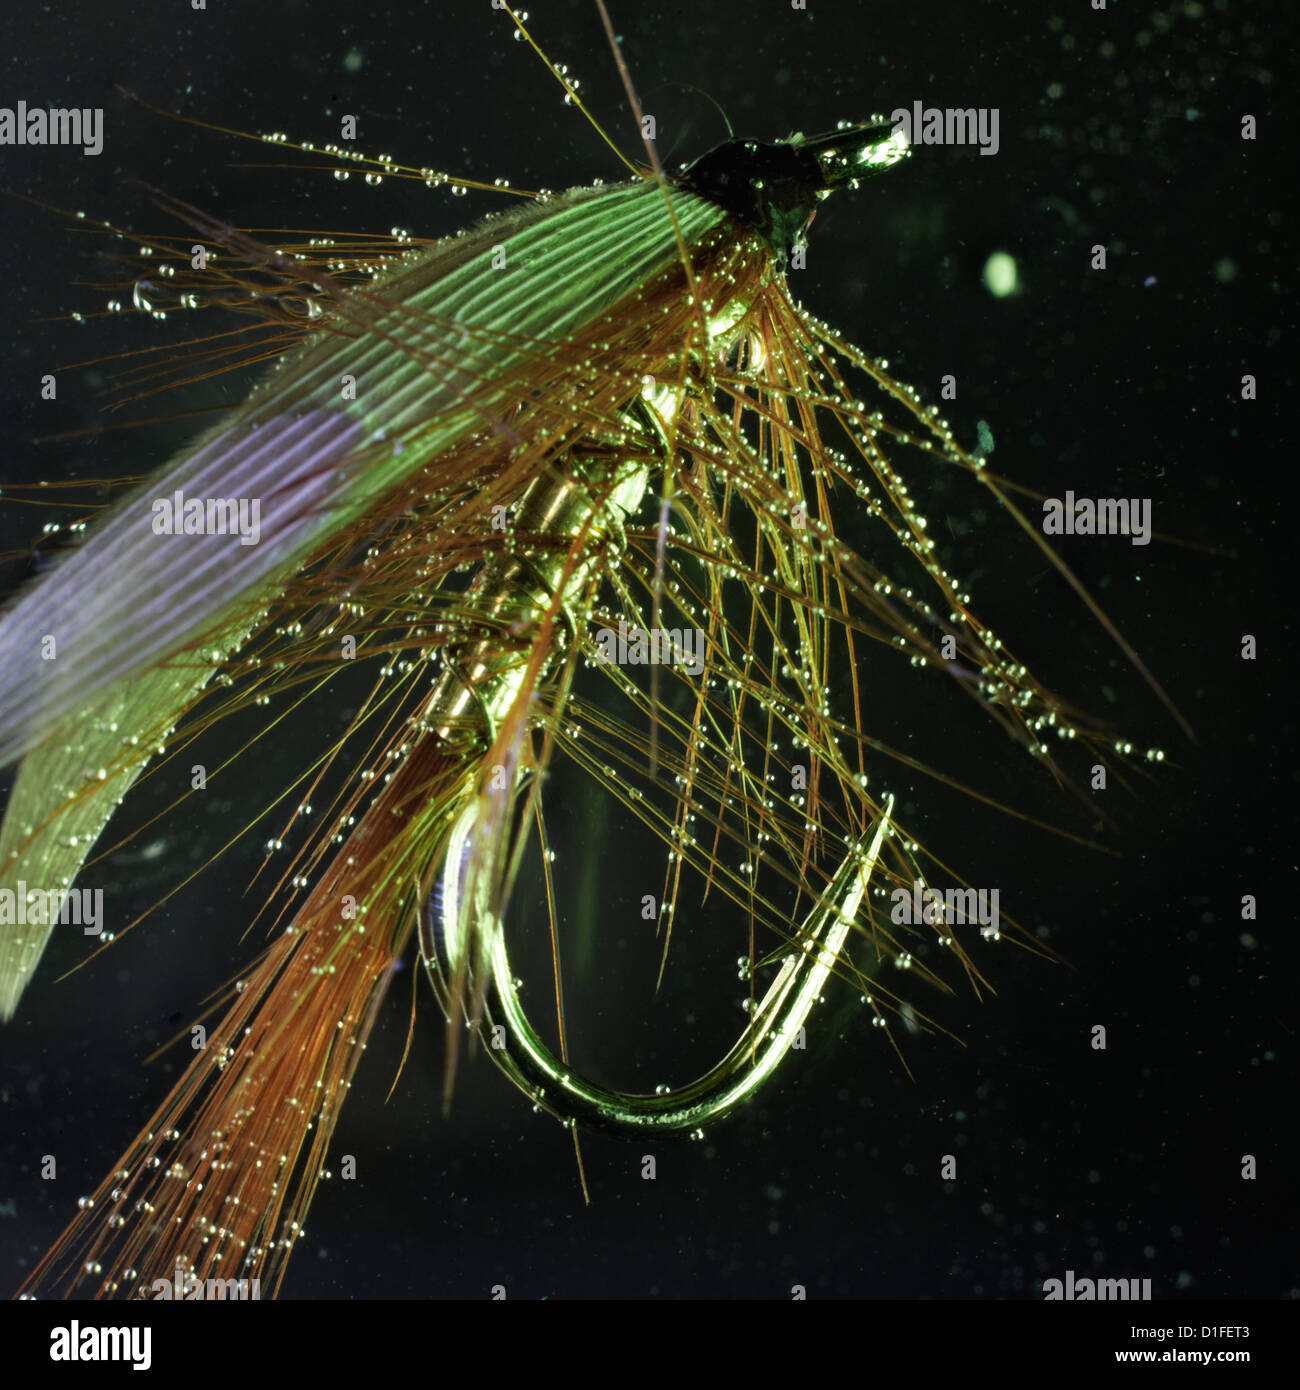 Wickhams fancy artificial Fishing fly used in angling in extreme close shot in water - Stock Image